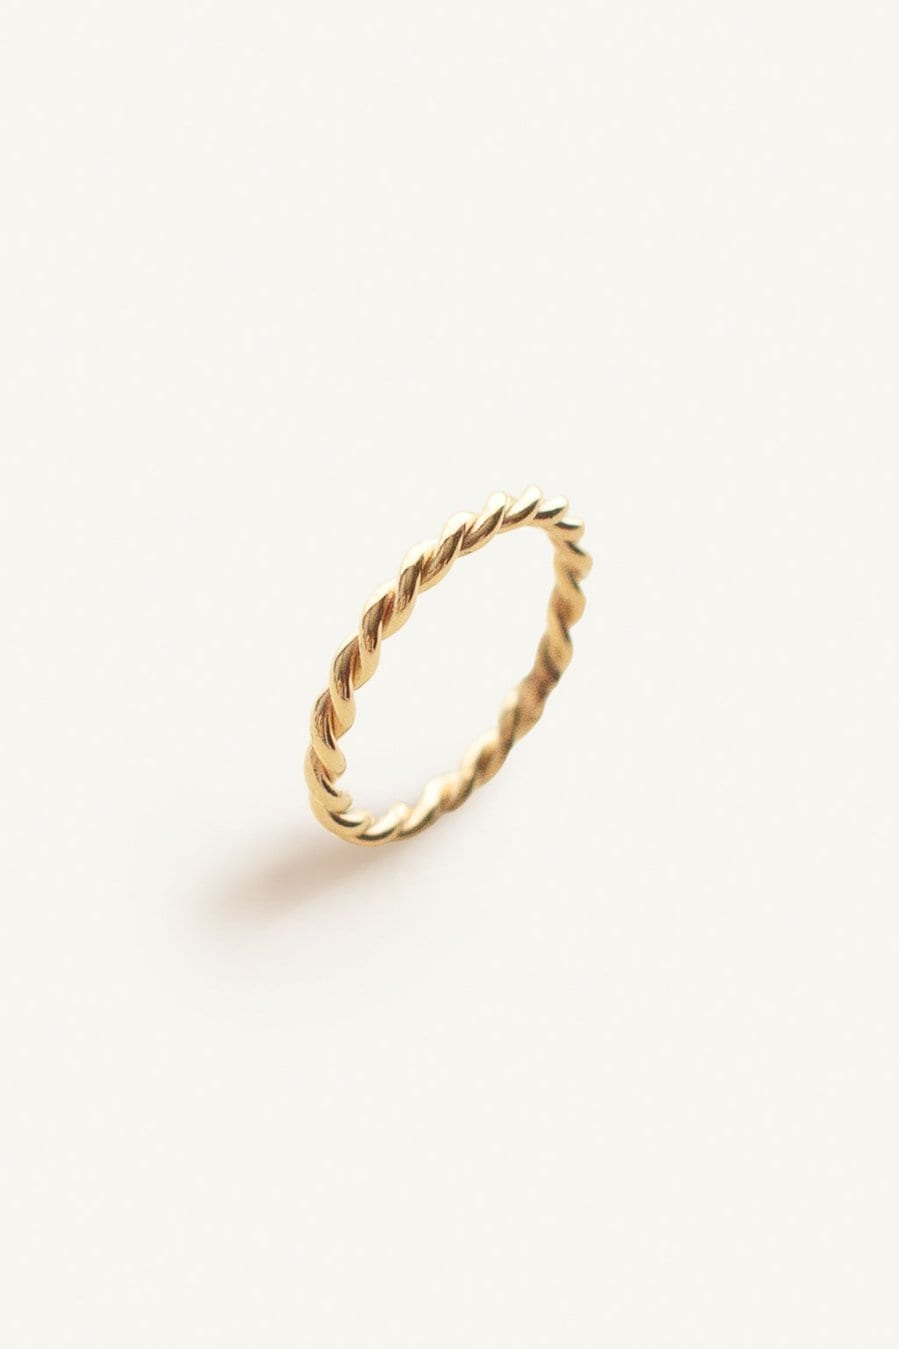 Twist Round Ring II / Neighborhood Goods